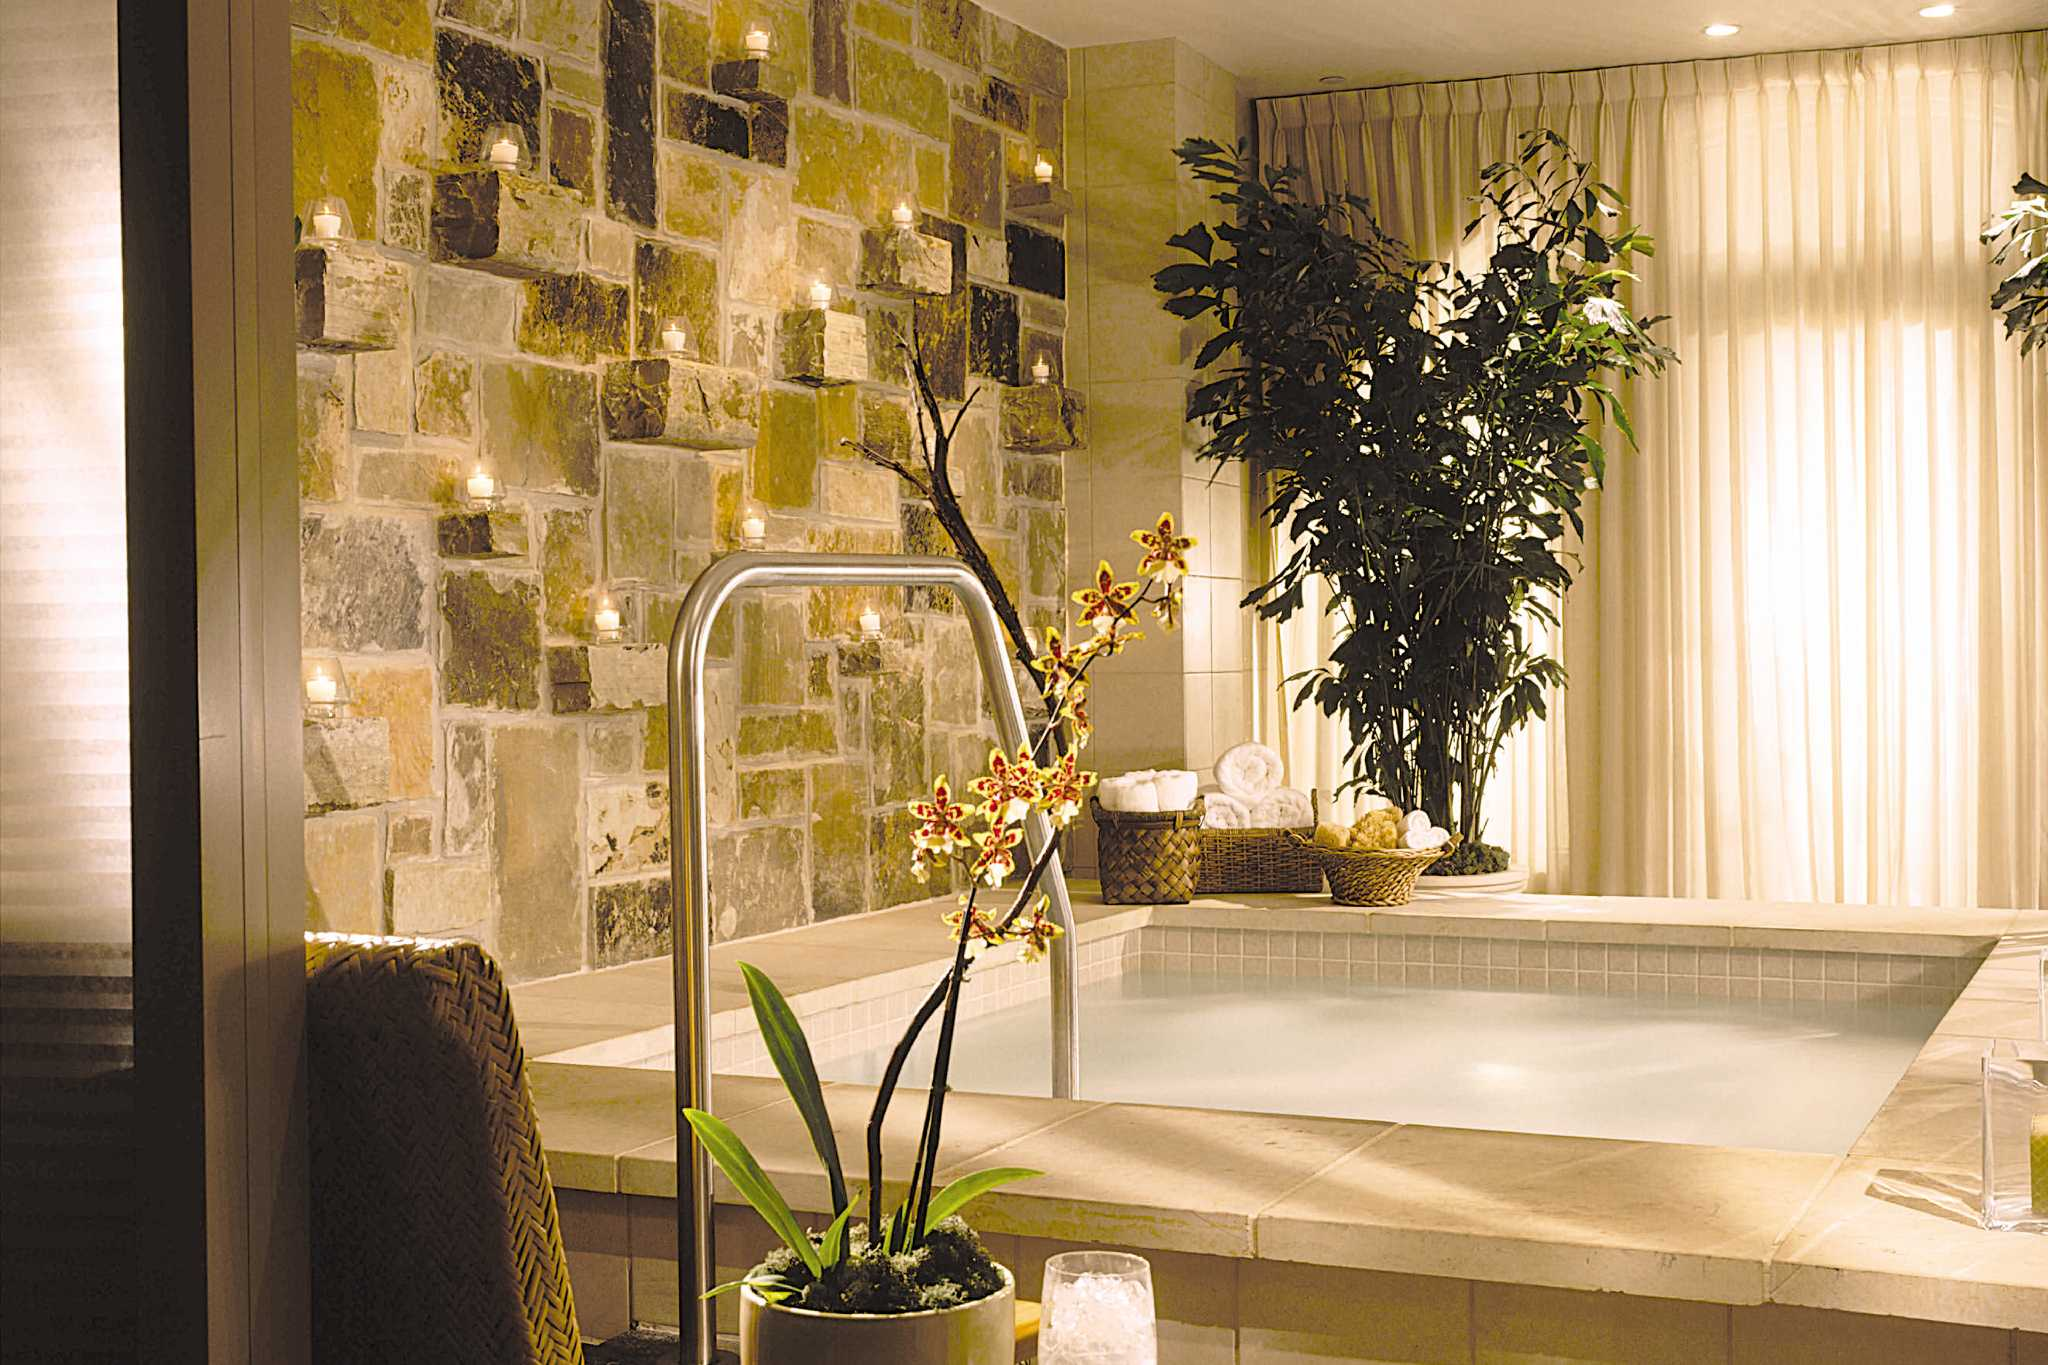 Sweet scents and body treats await at S.A. spas - San Antonio ...